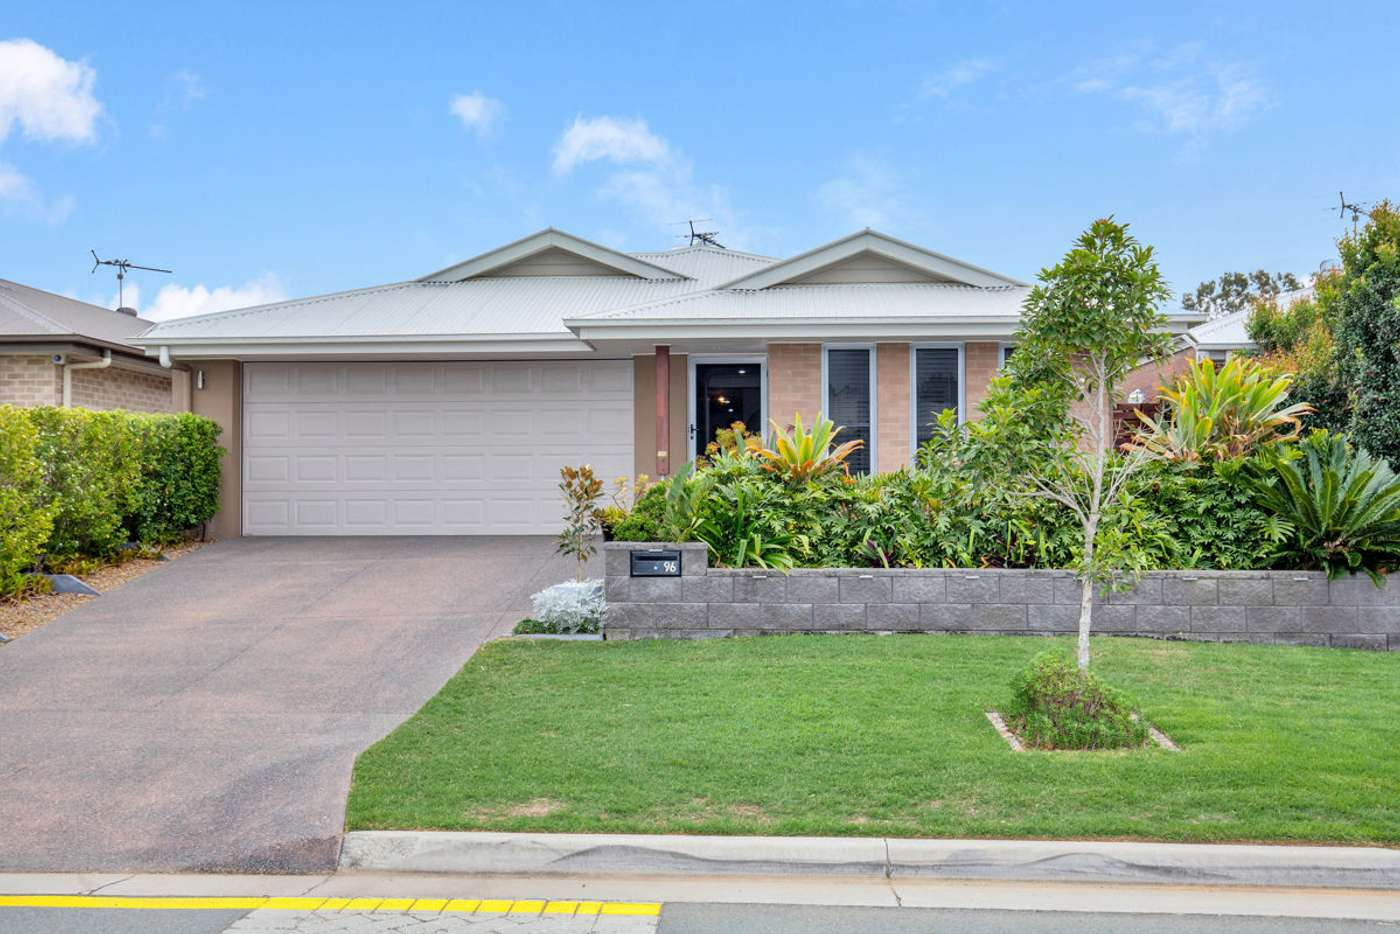 Main view of Homely house listing, 96 Brookside Cct, Ormeau QLD 4208